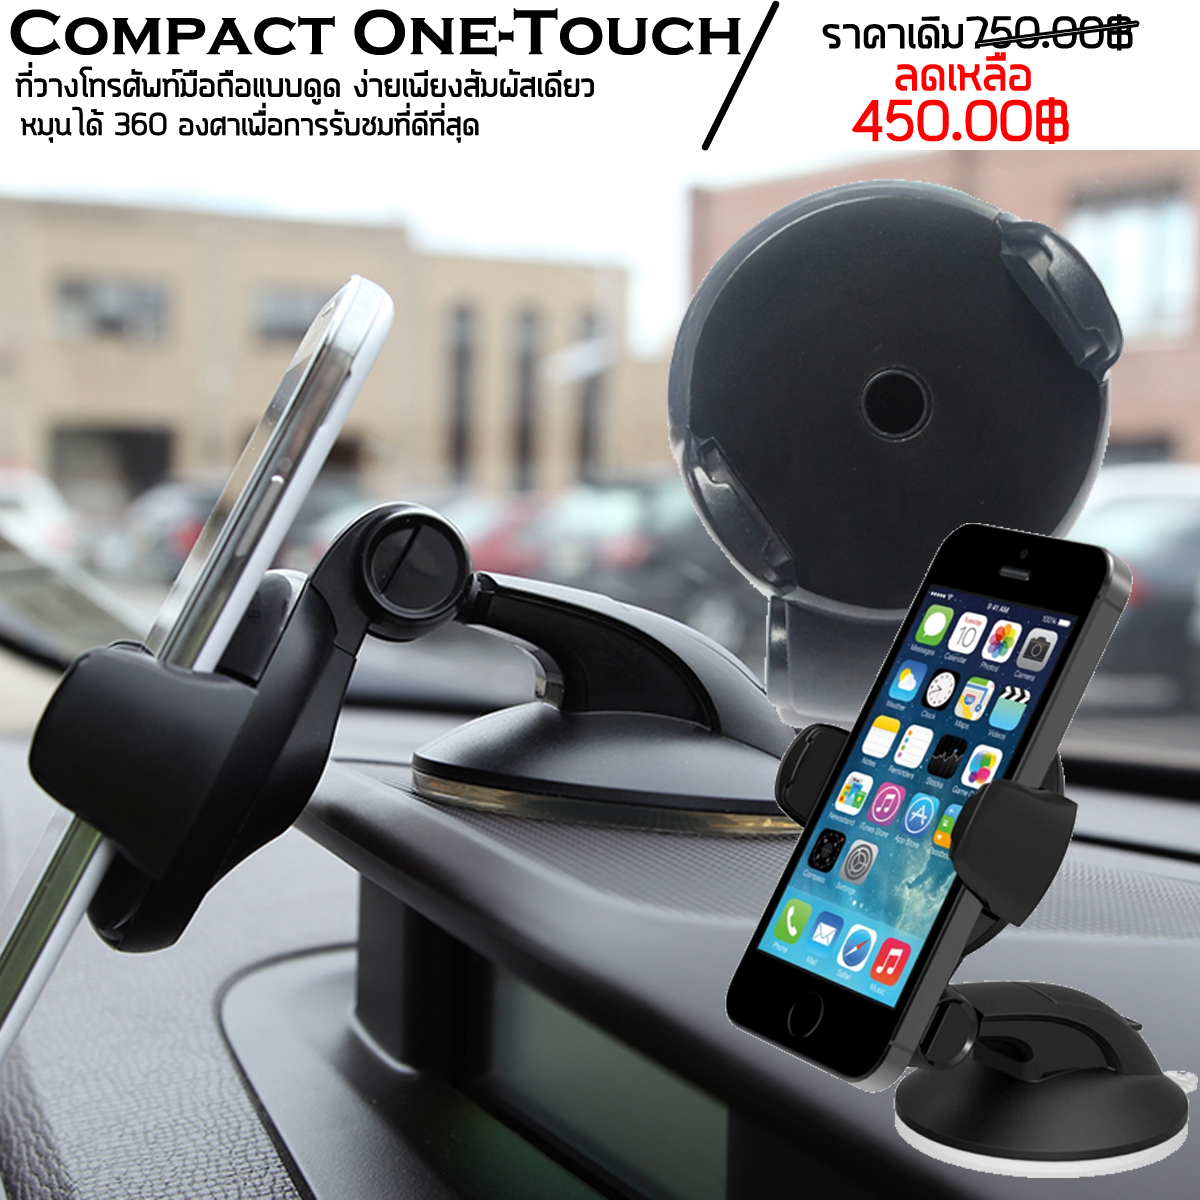 Compact One-Touch